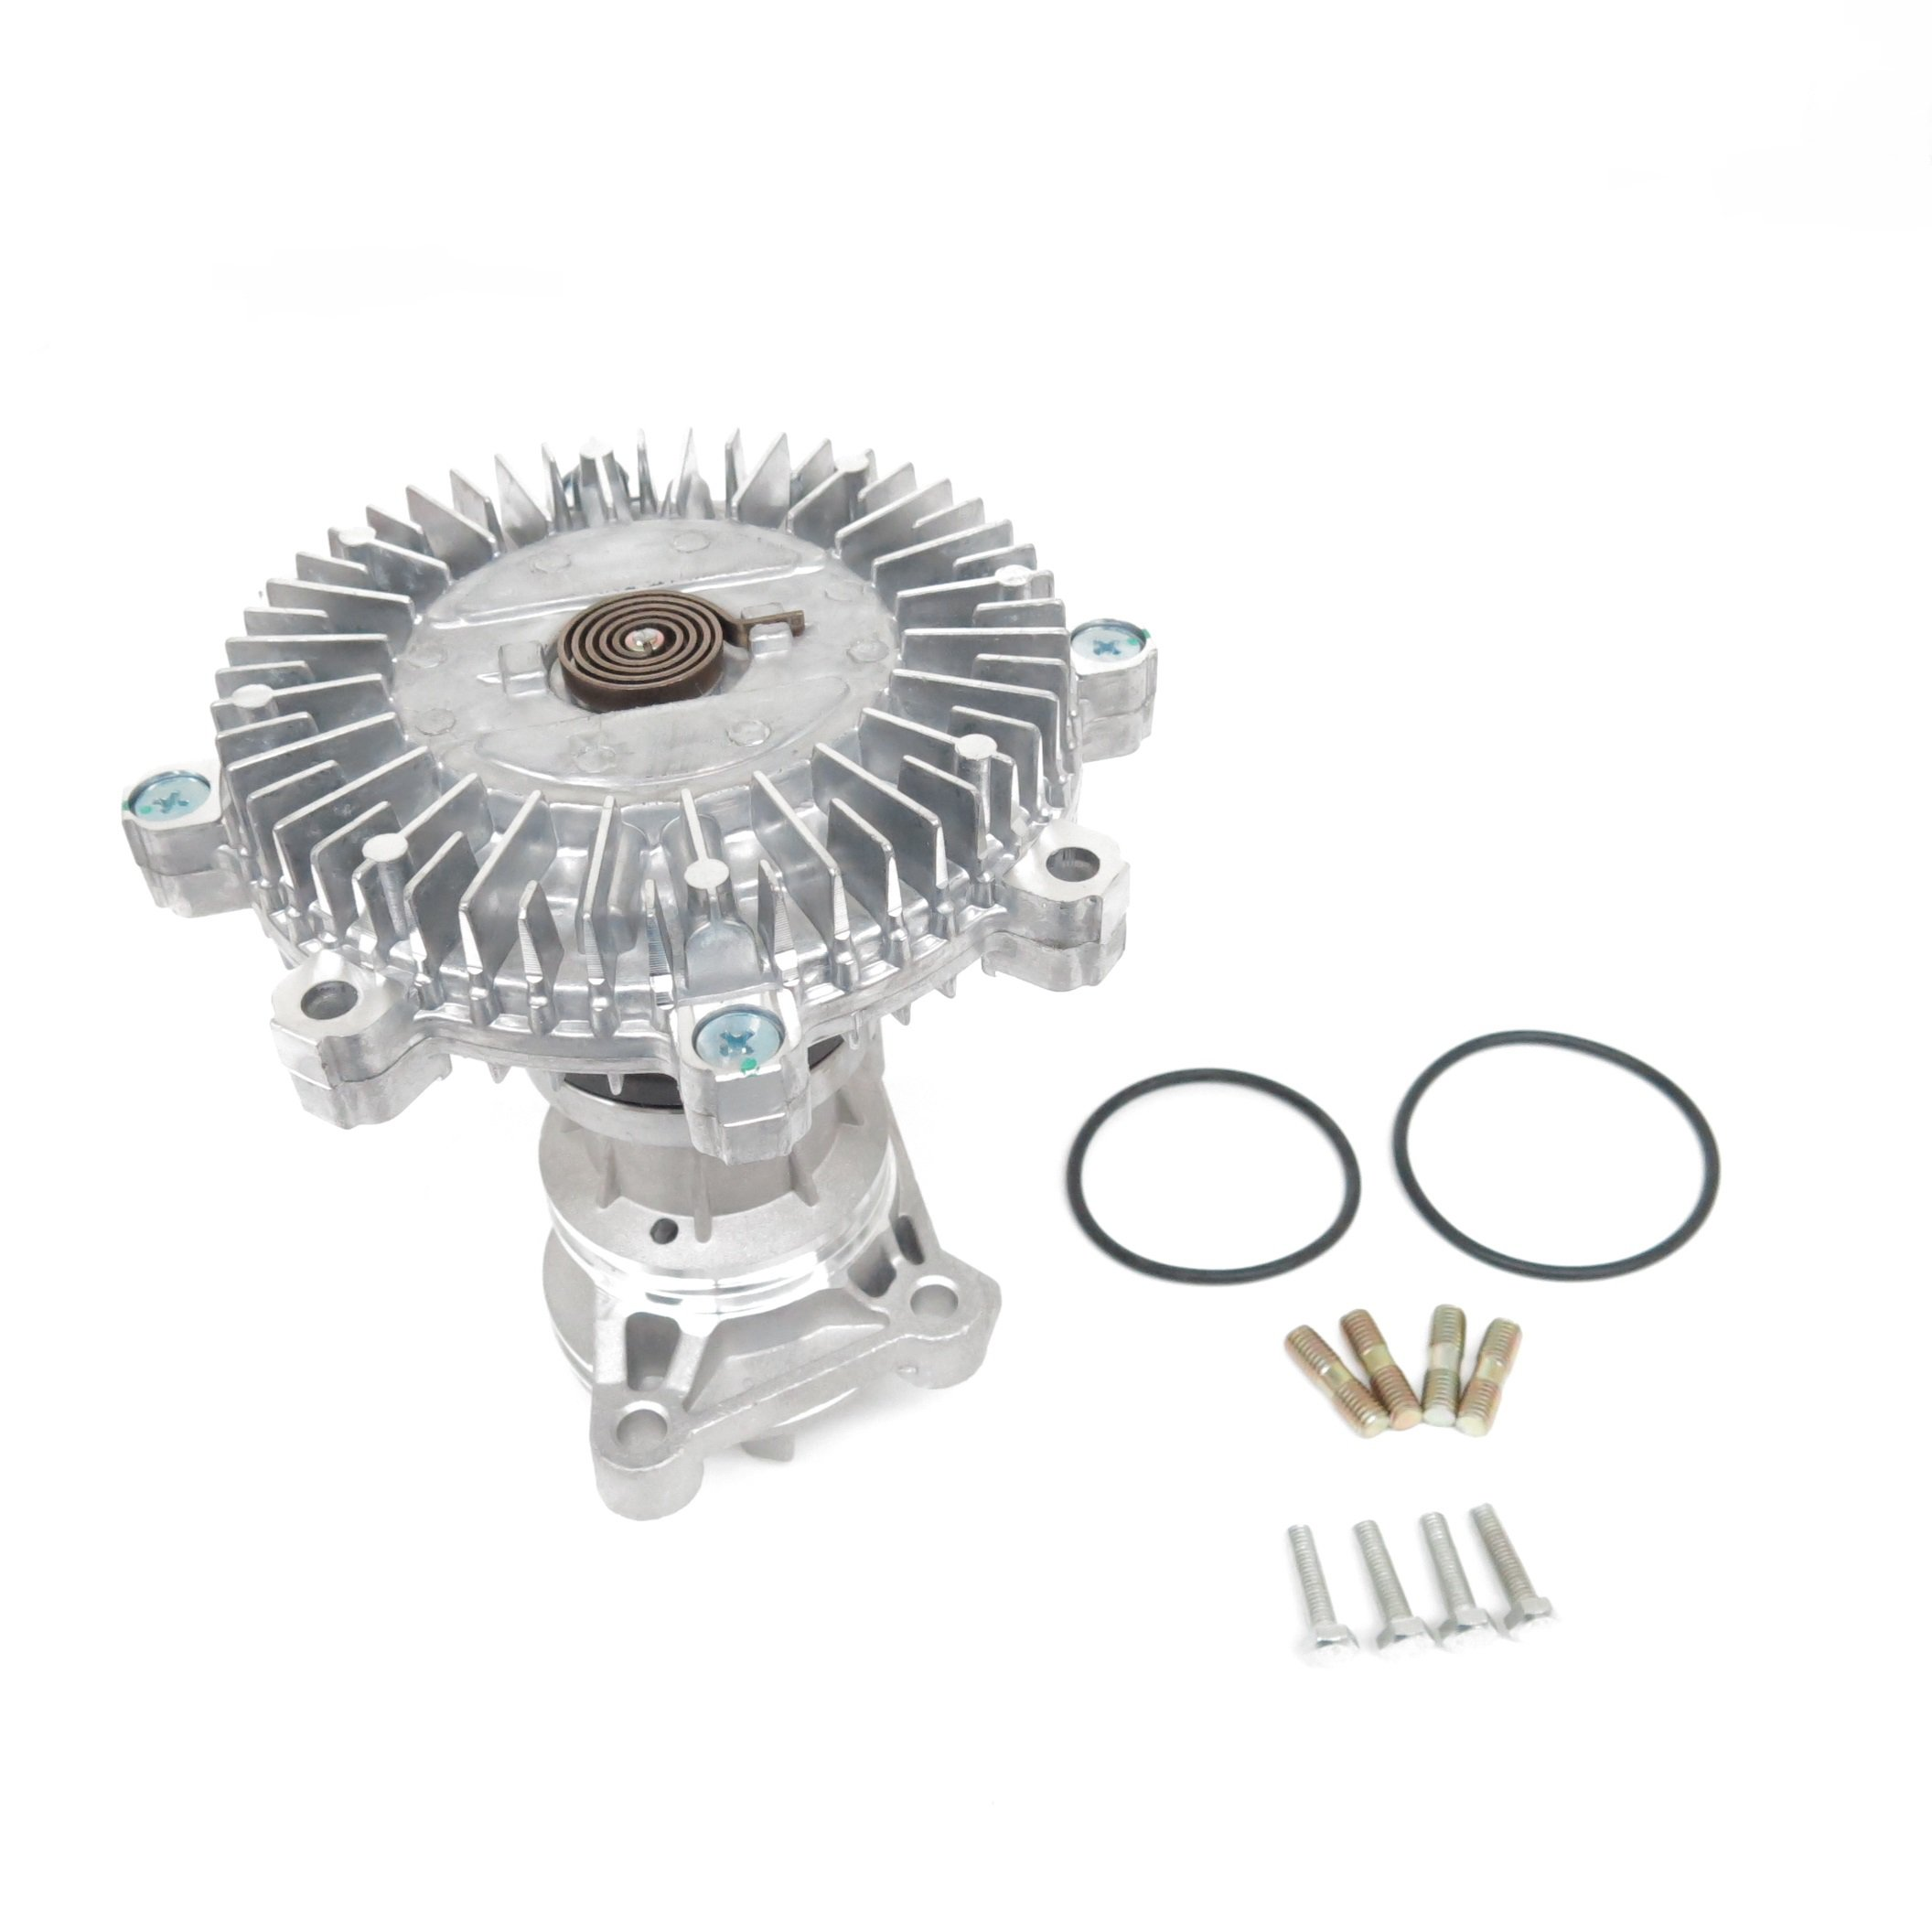 88-93 Chevy Pick Up 1500 4.3L 5.7L 100/% New Tested Water Pump /& Fan Clutch